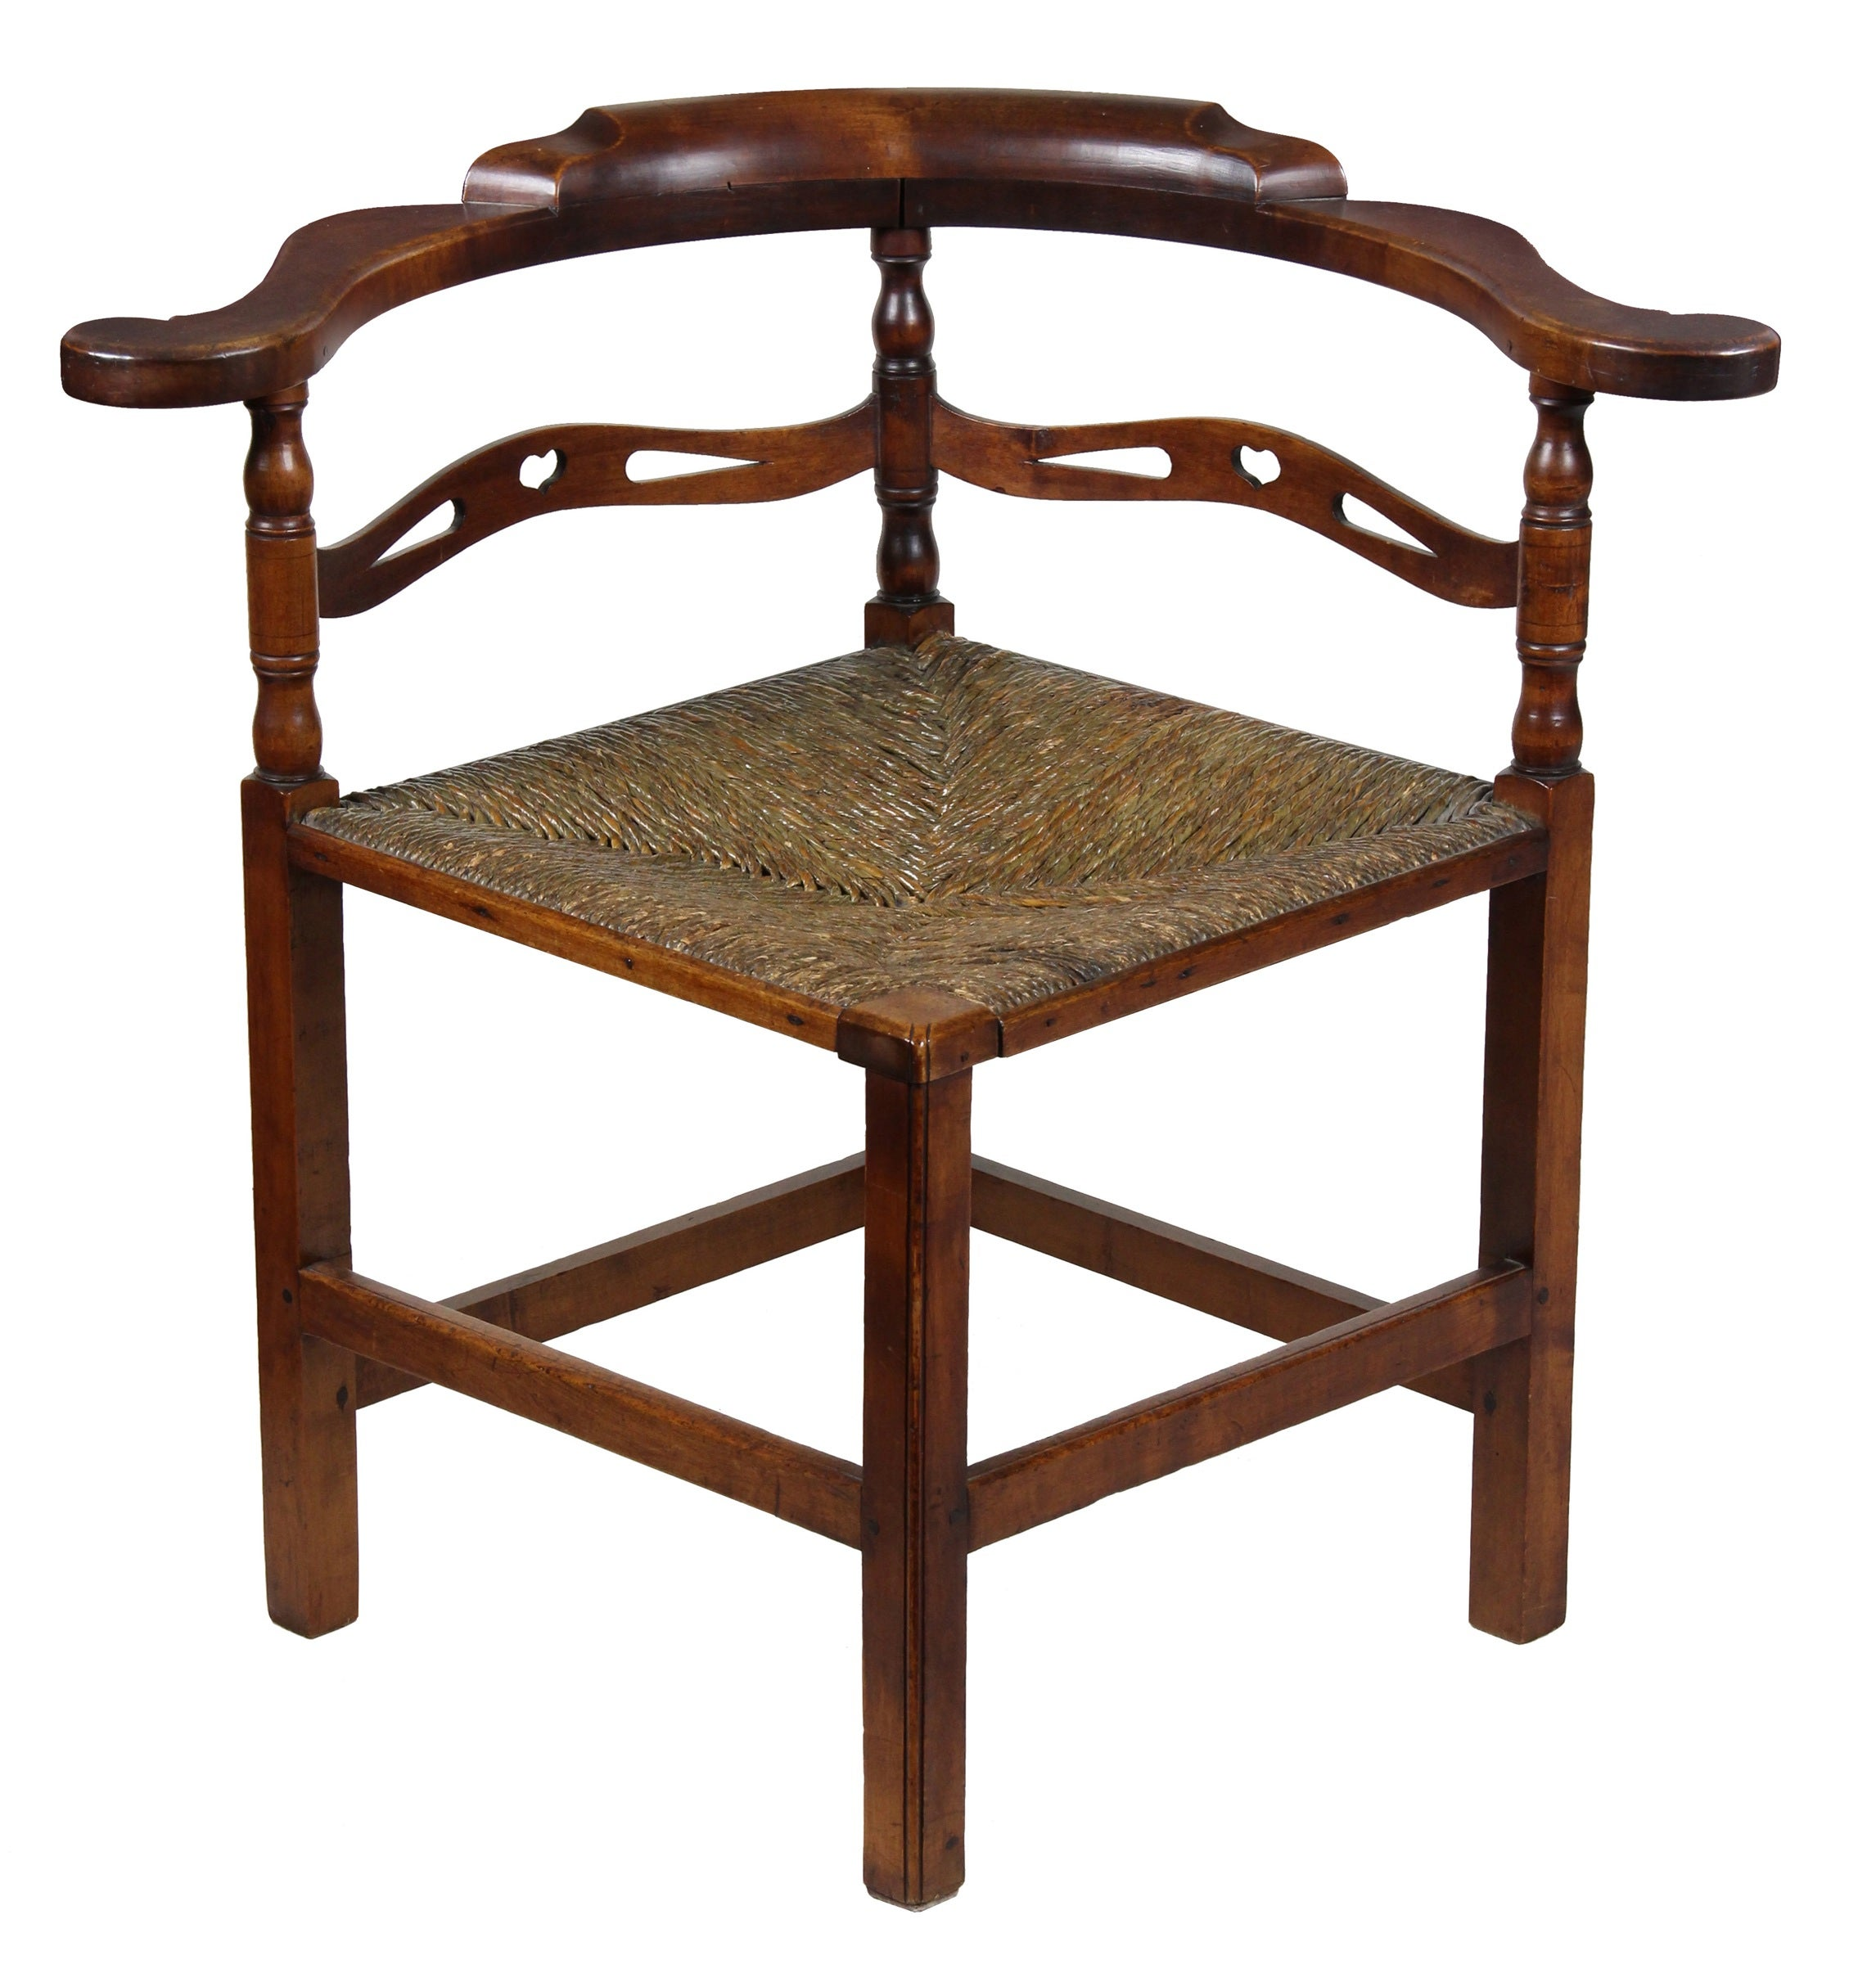 Cherry Corner Chair, Probably New Hampshire, Late 18th Century